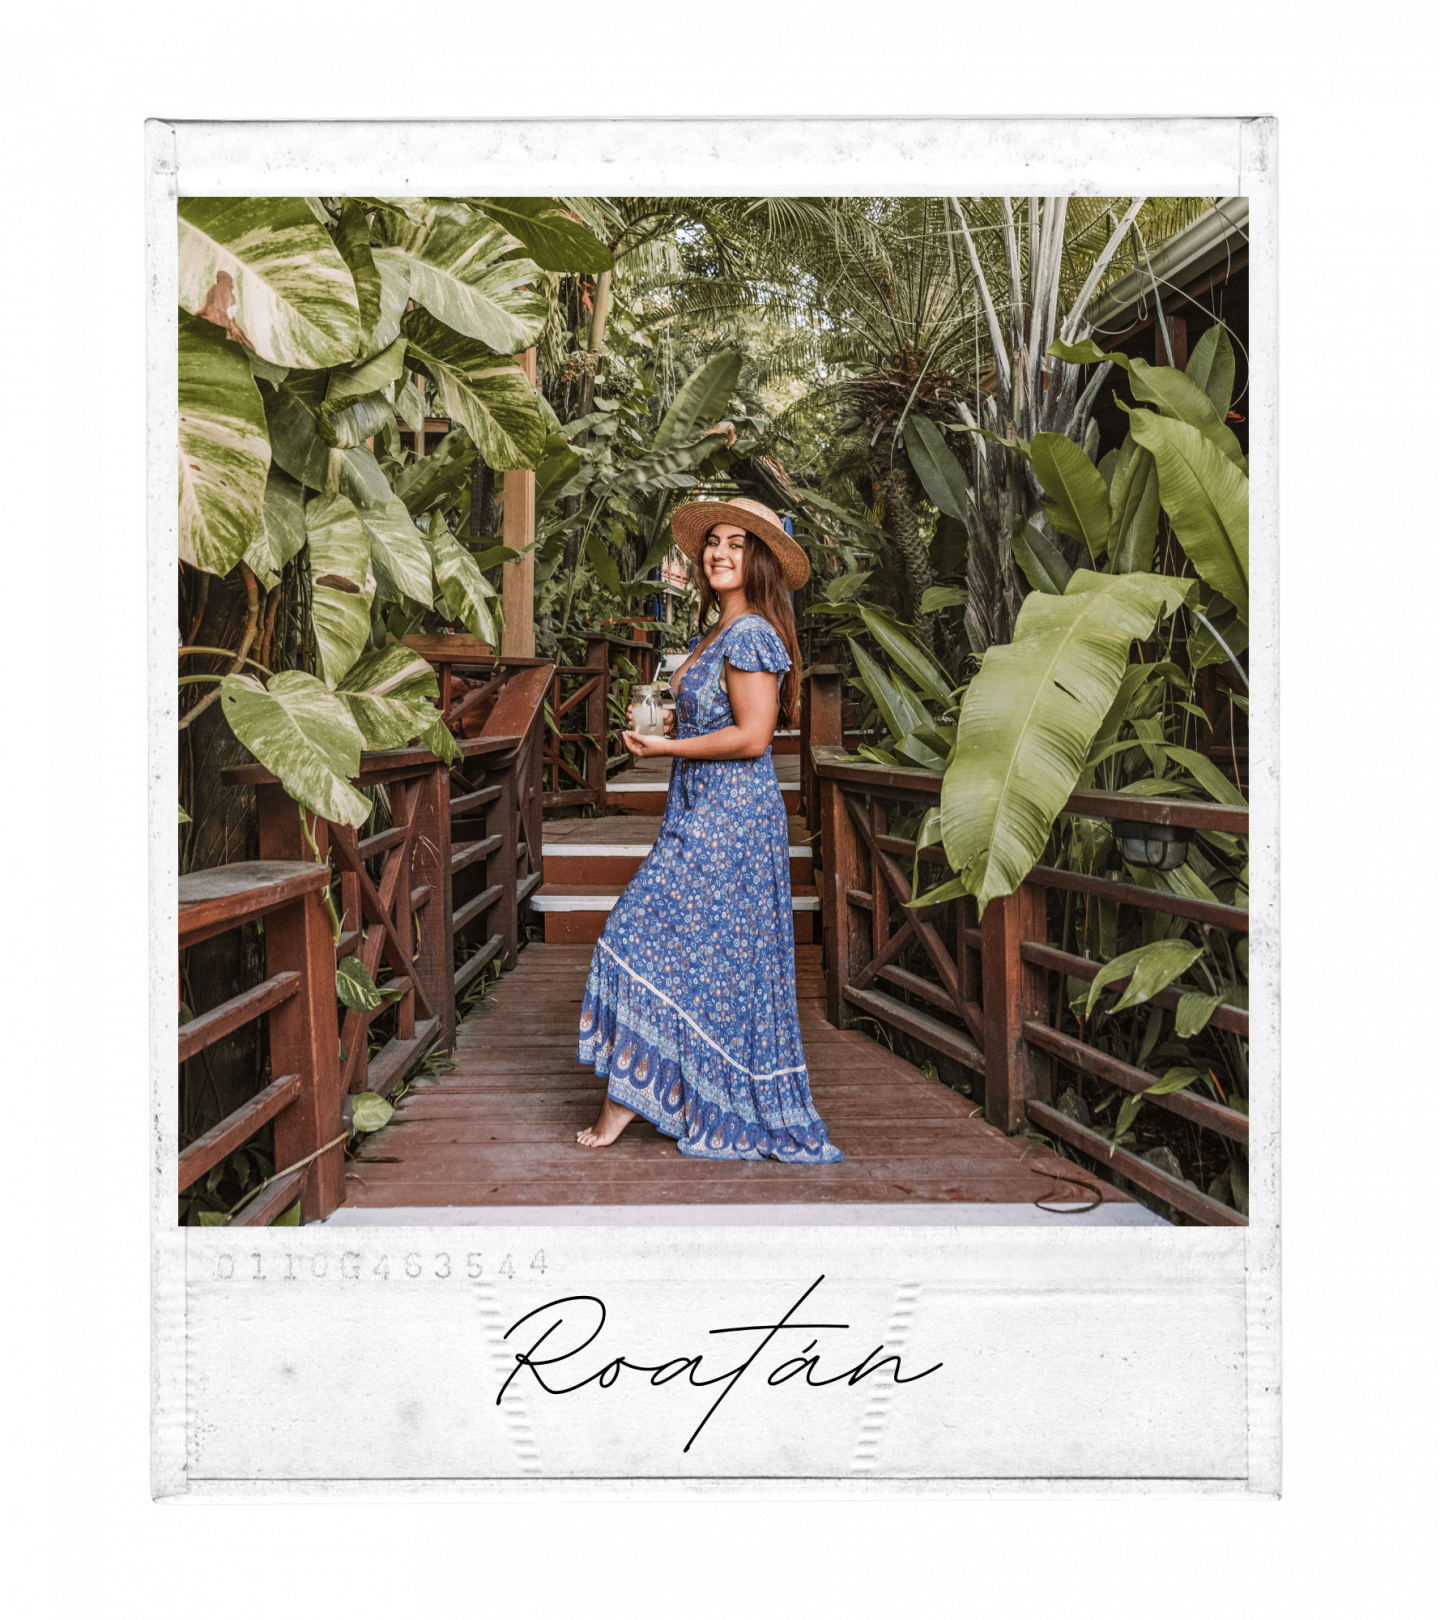 Is Roatan Safe for Solo Female Travelers?